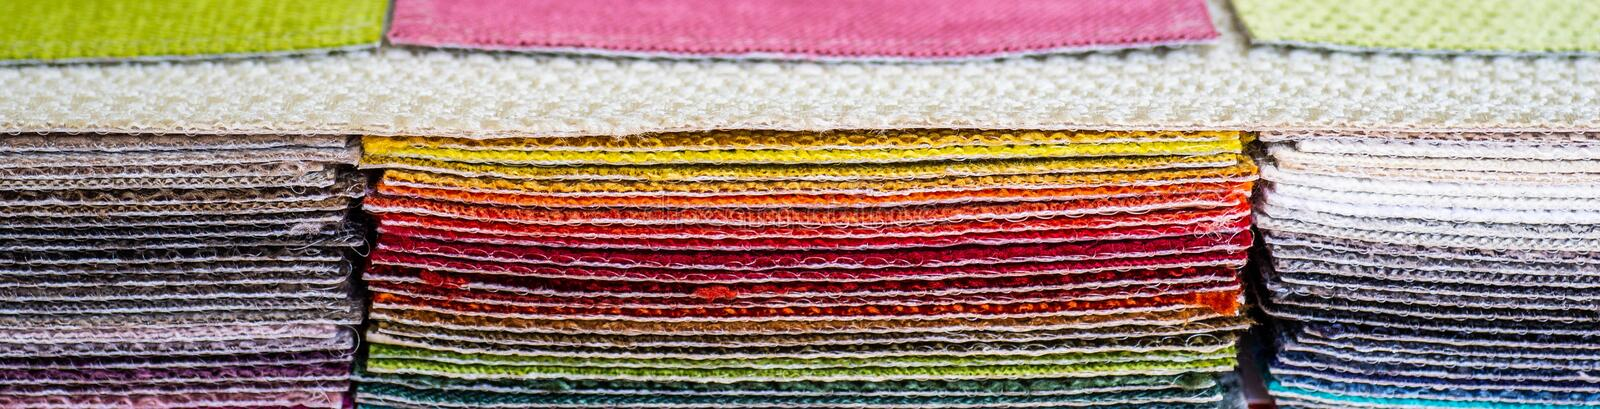 Catalog of multicolored cloth from matting fabric texture background, silk fabric texture. Textile industry background royalty free stock photos